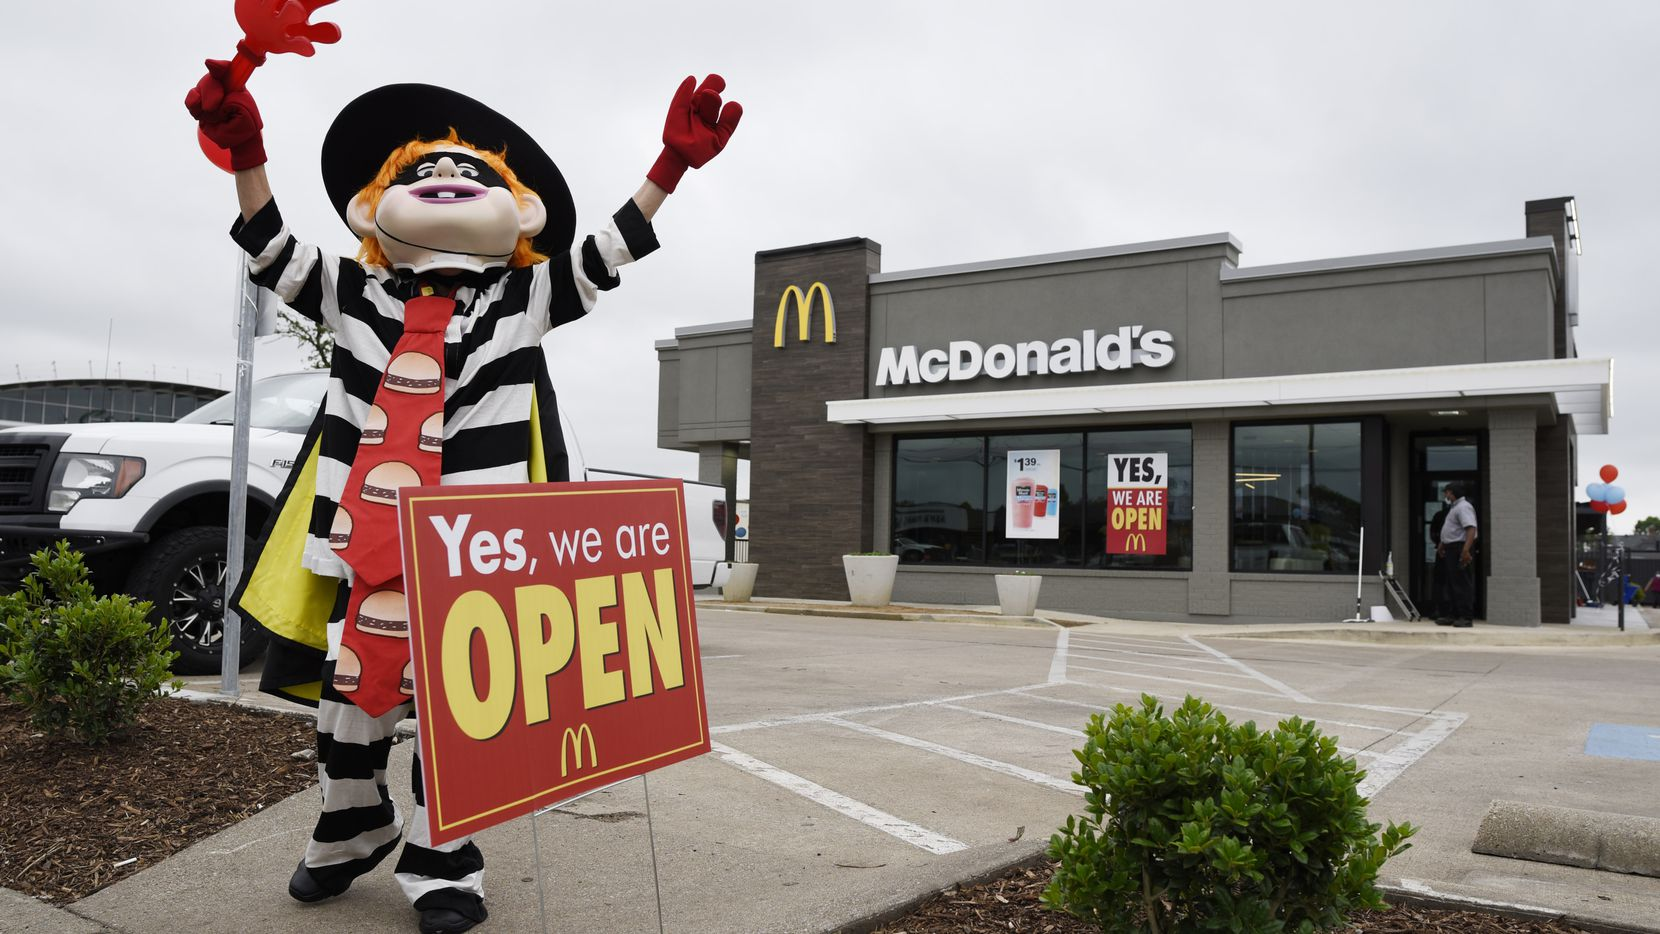 """A McDonald's employee is dressed as the """"Hamburglar"""" advertising the opening of the McDonald's restaurant at the Preston Oaks shopping center in Dallas, May 13, 2020. The McDonald's is opened for the first time since the October 2019 tornado that destroyed it. Ben Torres/Special Contributor"""